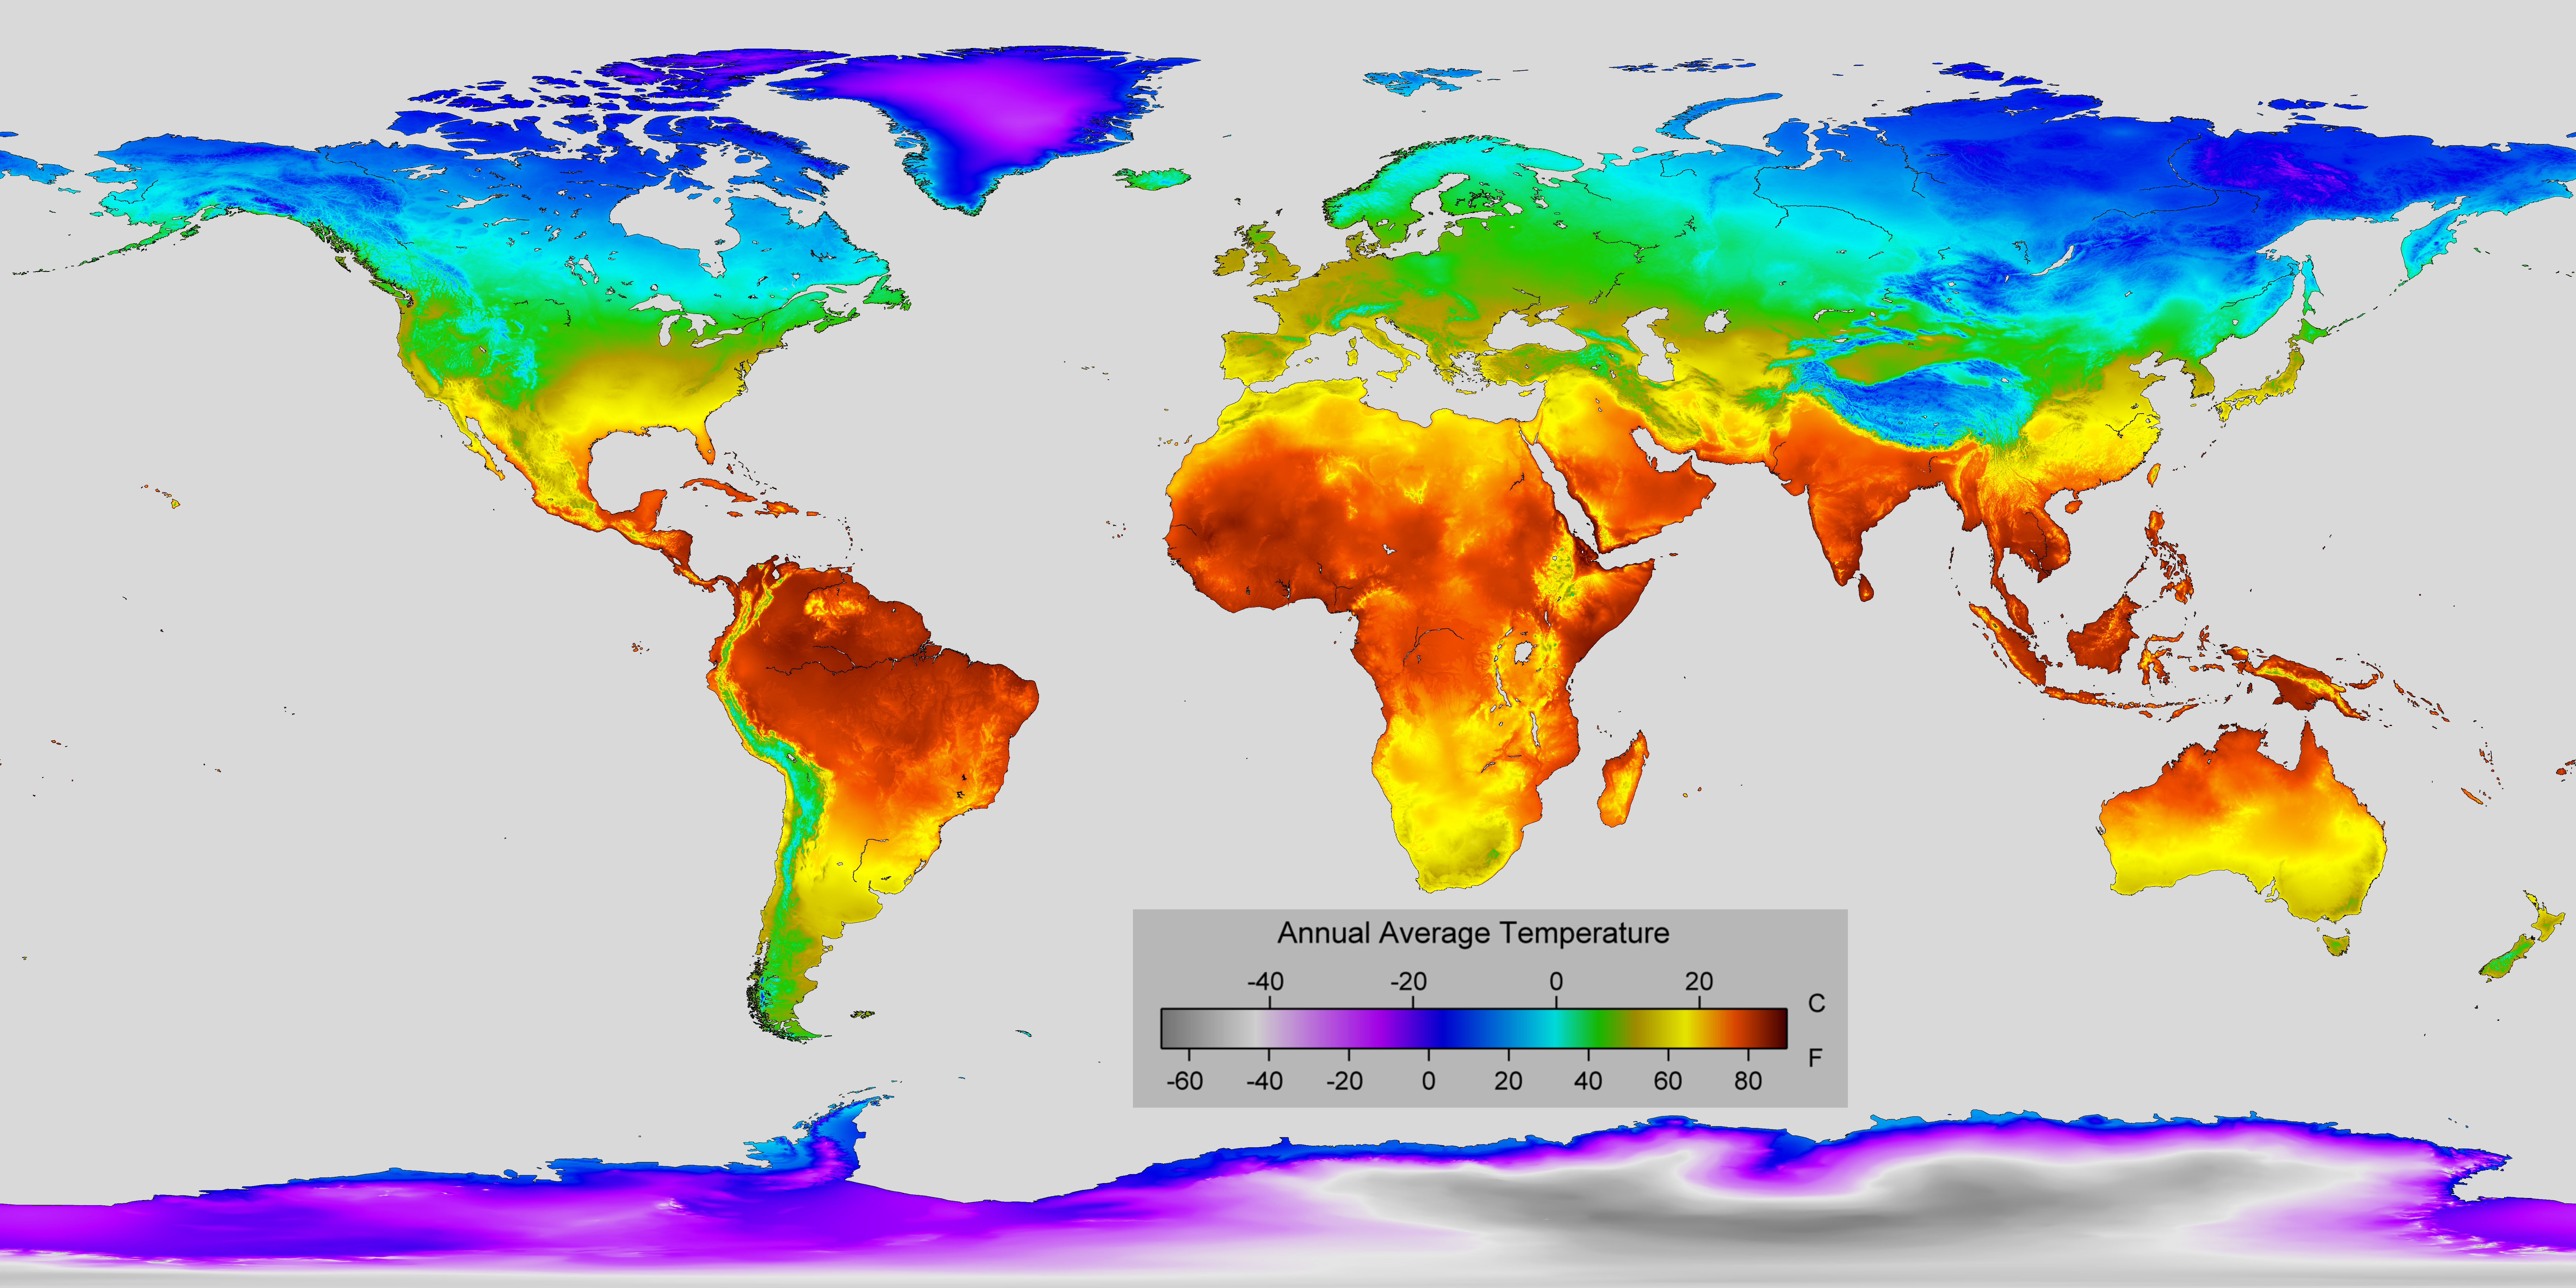 World Temperature Map Global annual average temperature map [8640x4320] [OS] : MapPorn